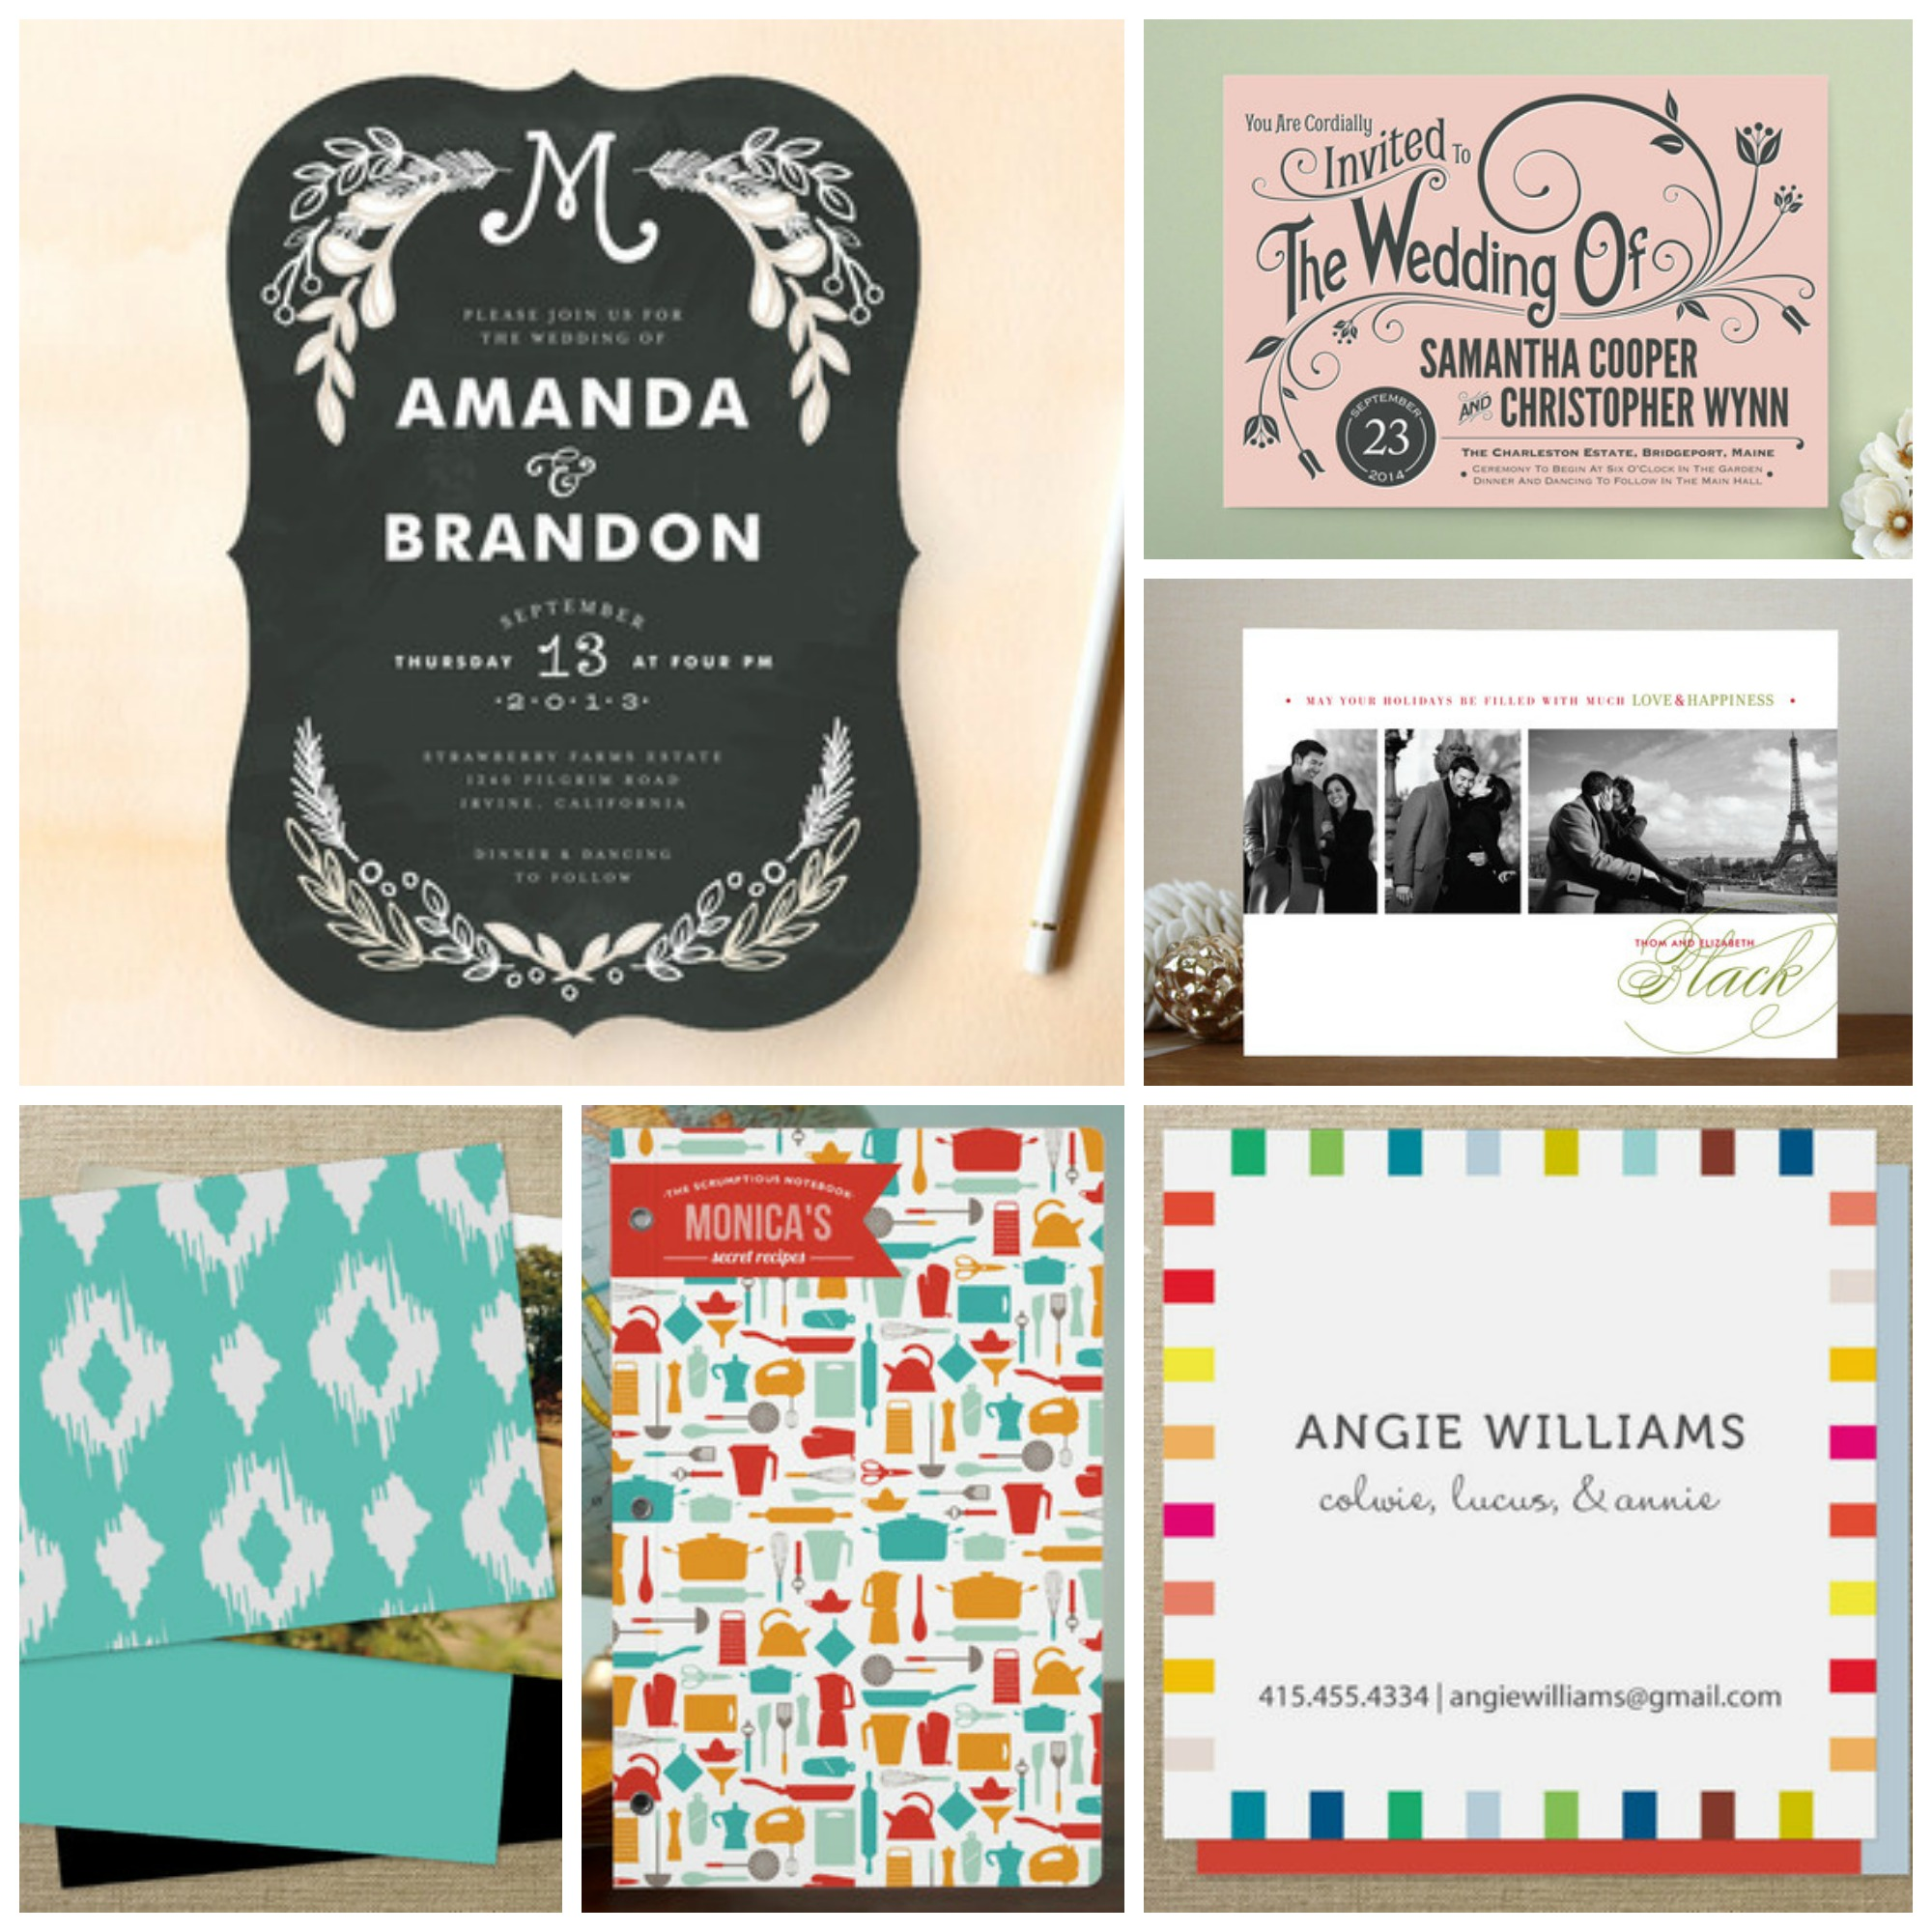 Indie designed products are now at minted business cards mintcollage colourmoves